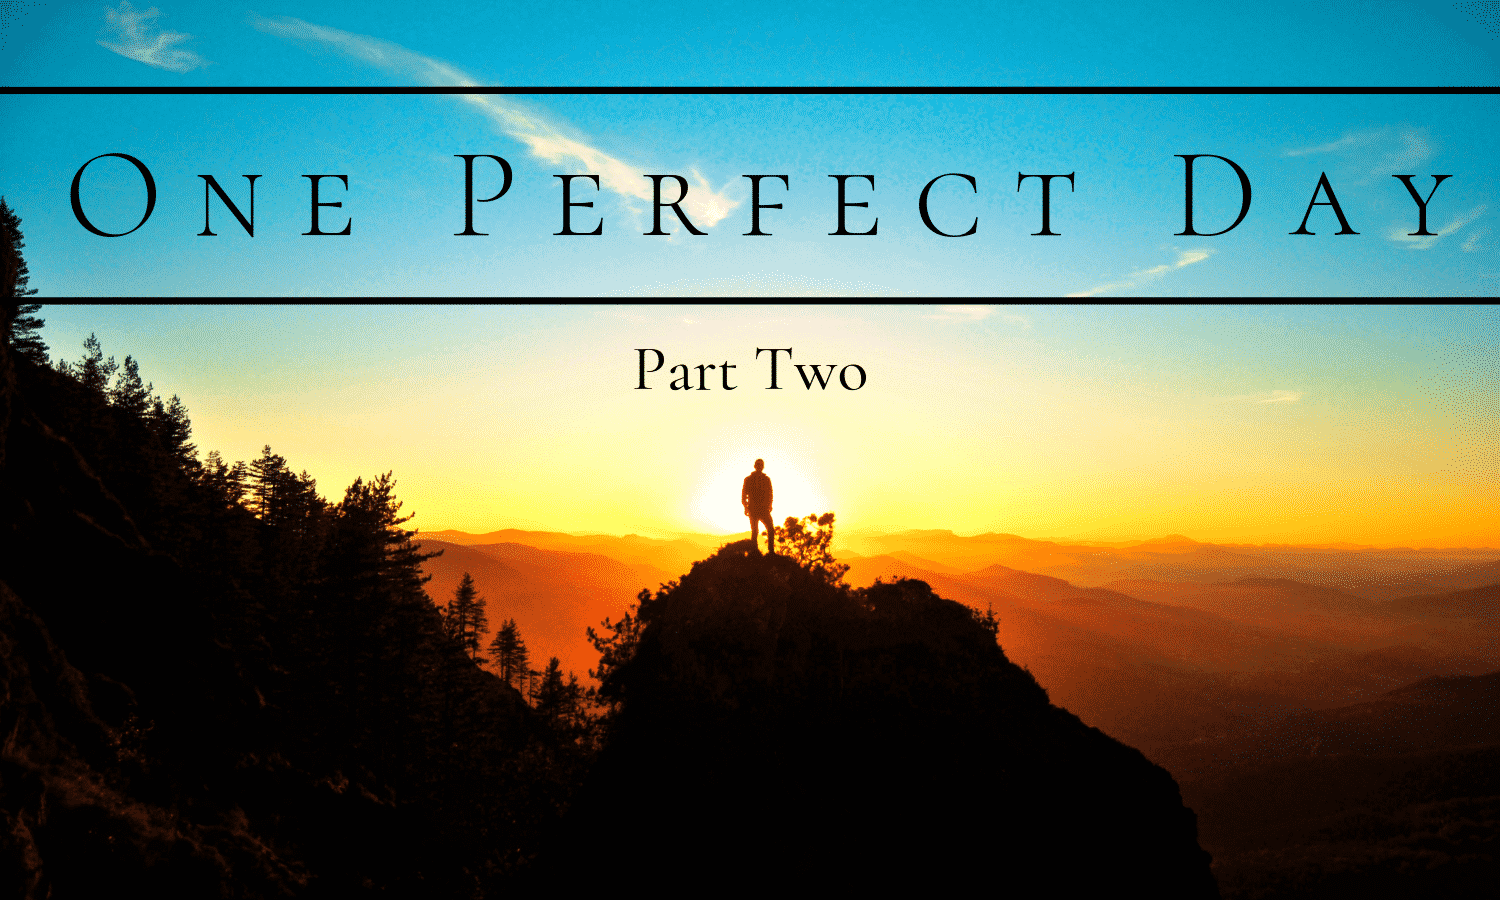 Edna's One Perfect Day, Part II